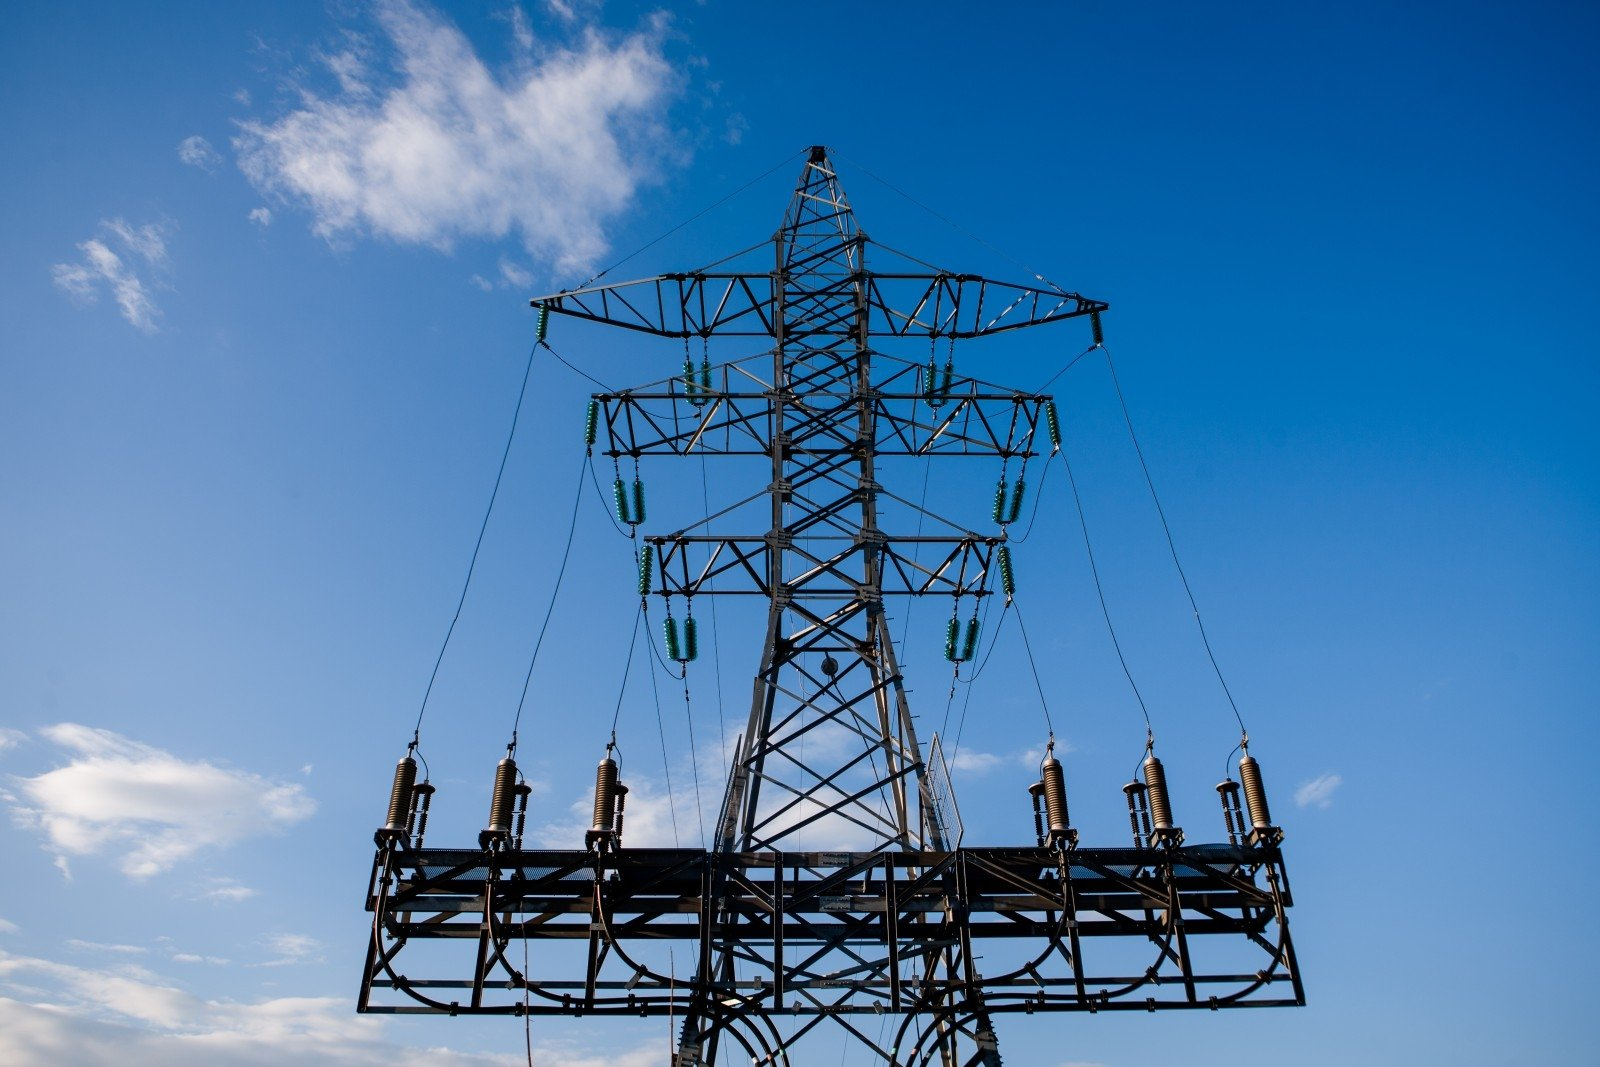 Ukraine will reduce electricity production by 1.3% in 2019 – the Ministry of Energy